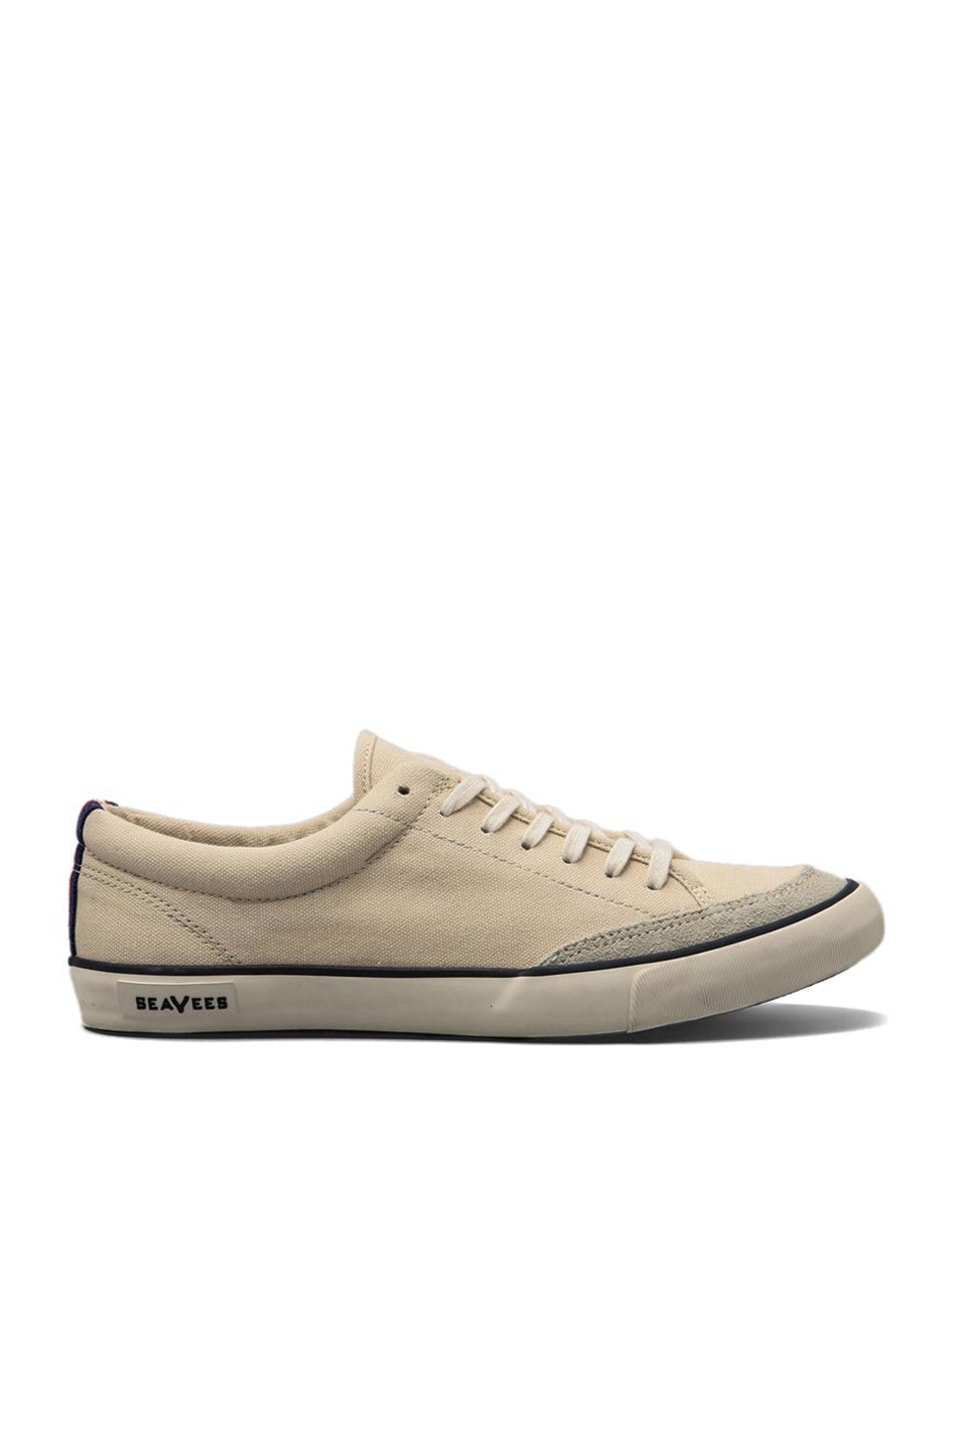 SeaVees Tennis Shoe Canvas in Natural